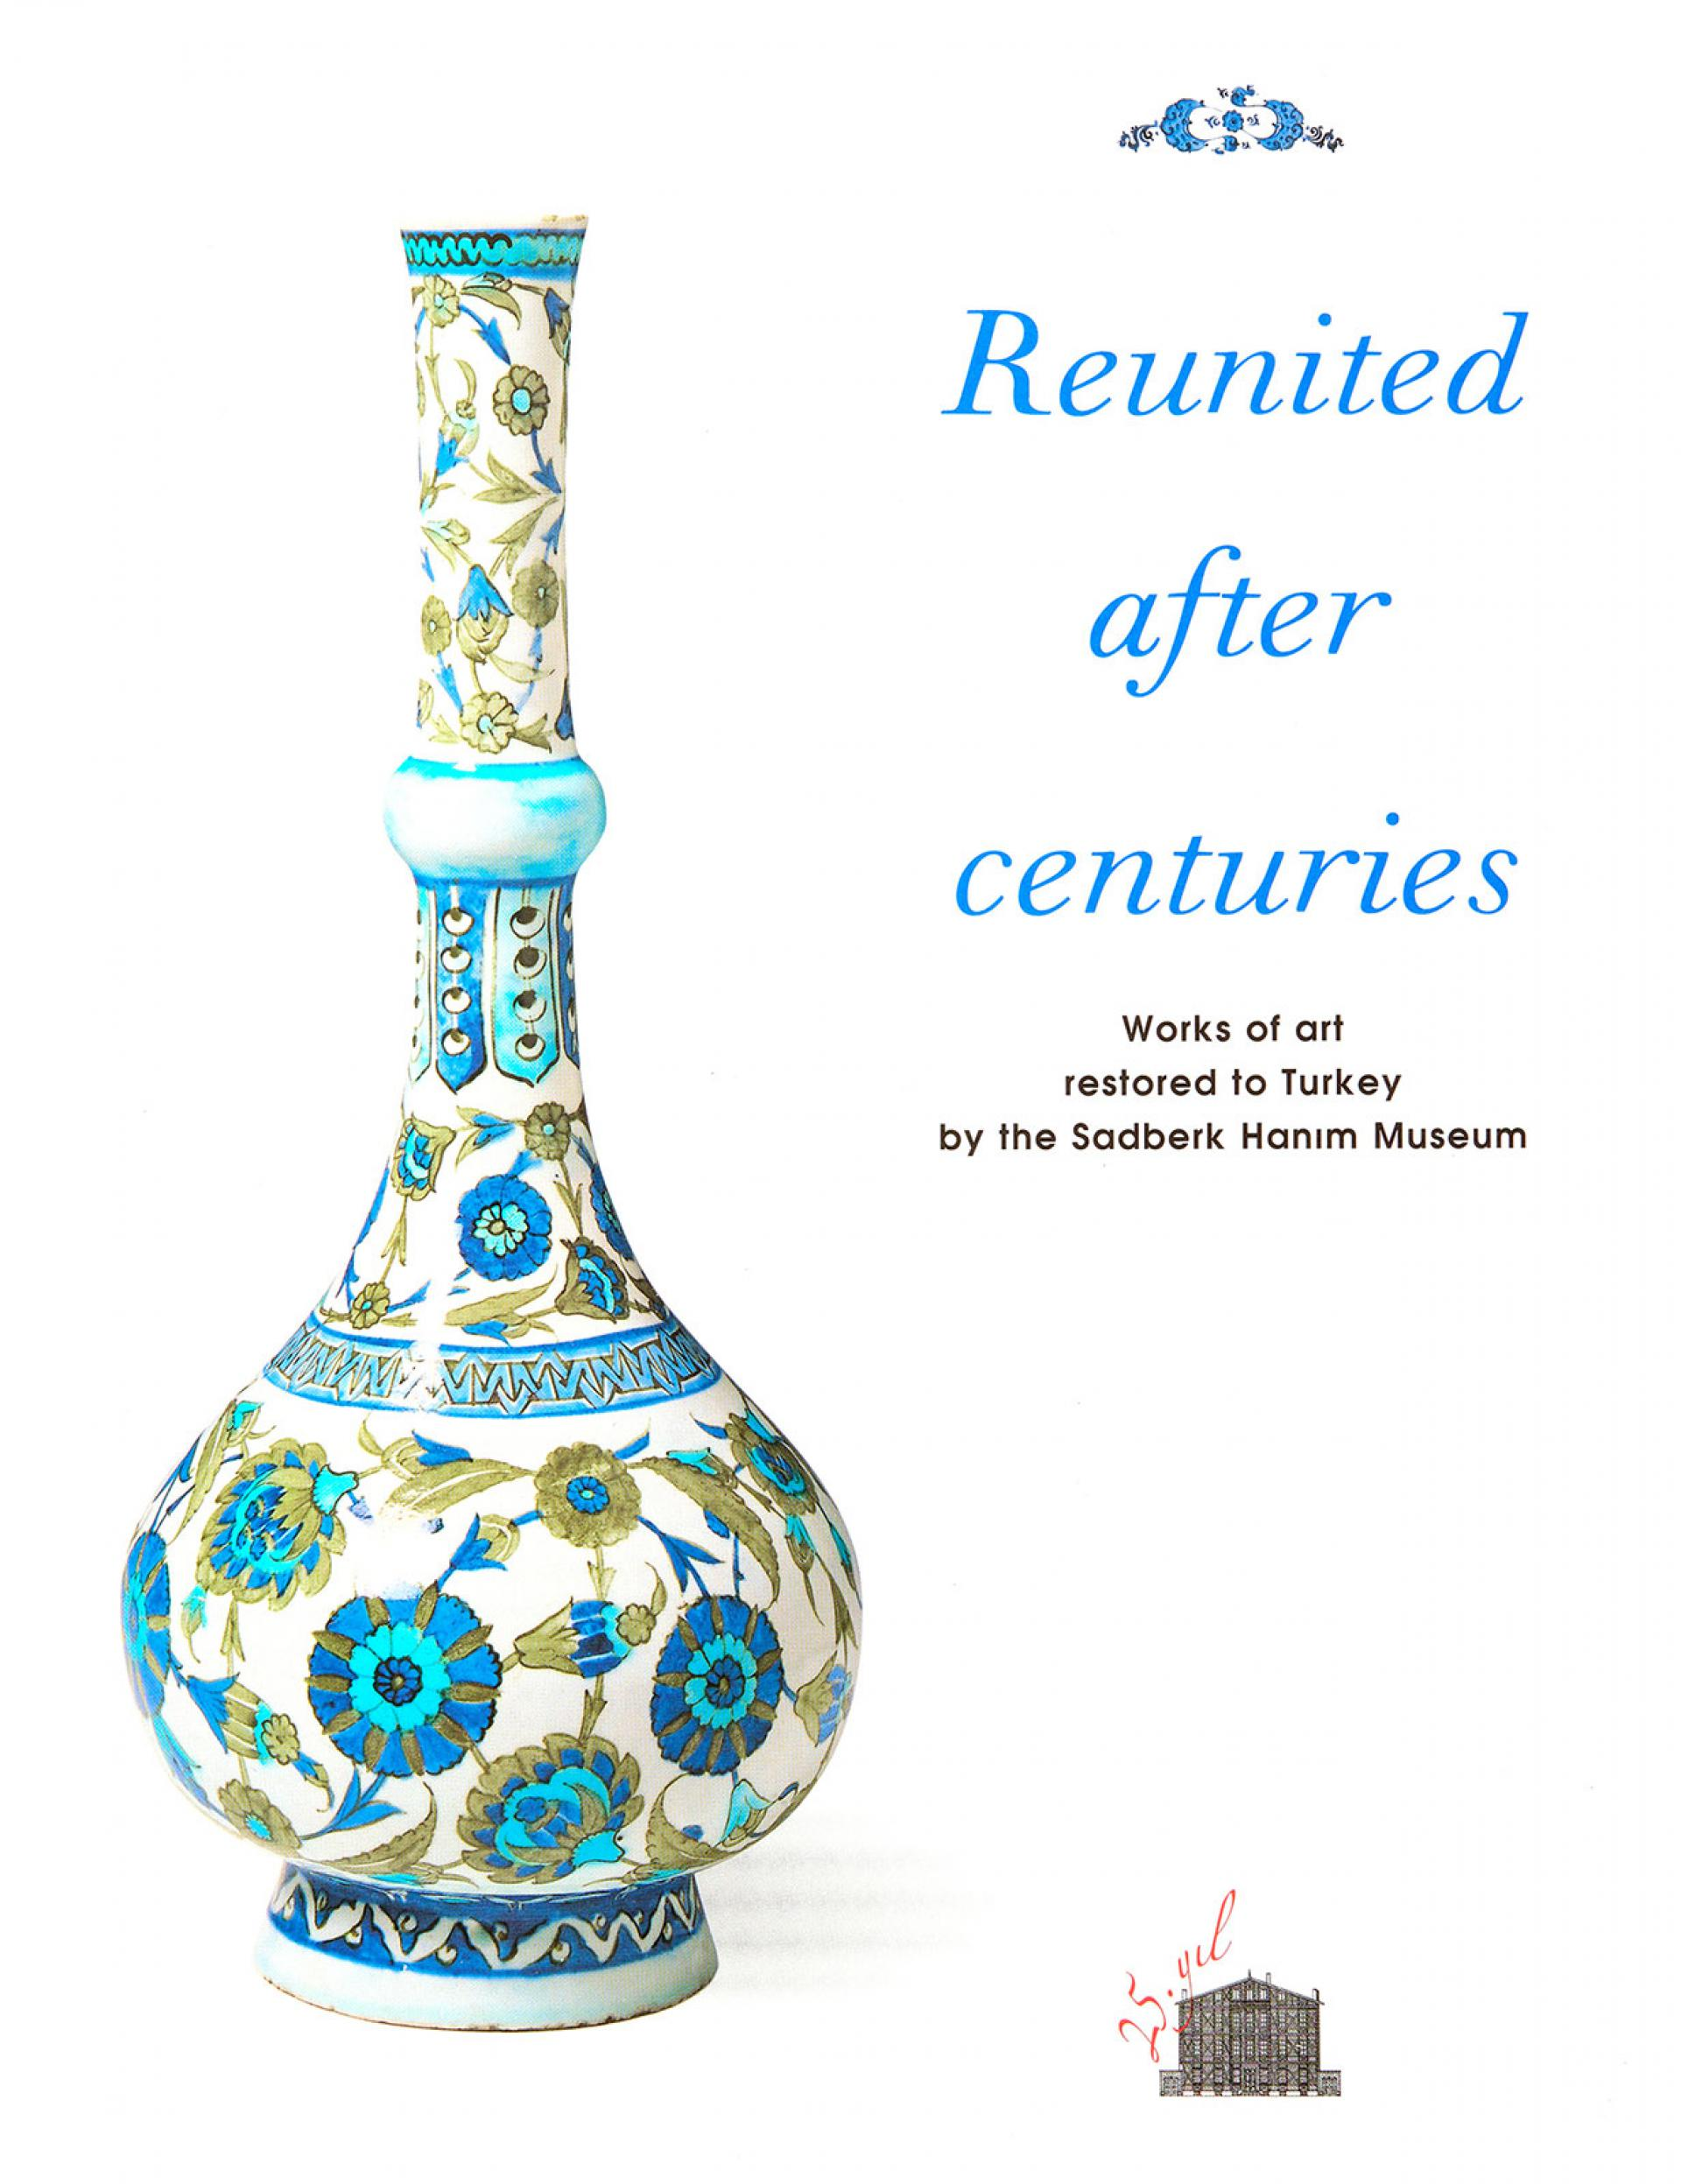 Reunited After Centuries - Works of Art Restored to Turkey by the Sadberk Hanım Museum - KİTAPLAR - Sadberk Hanım Müzesi